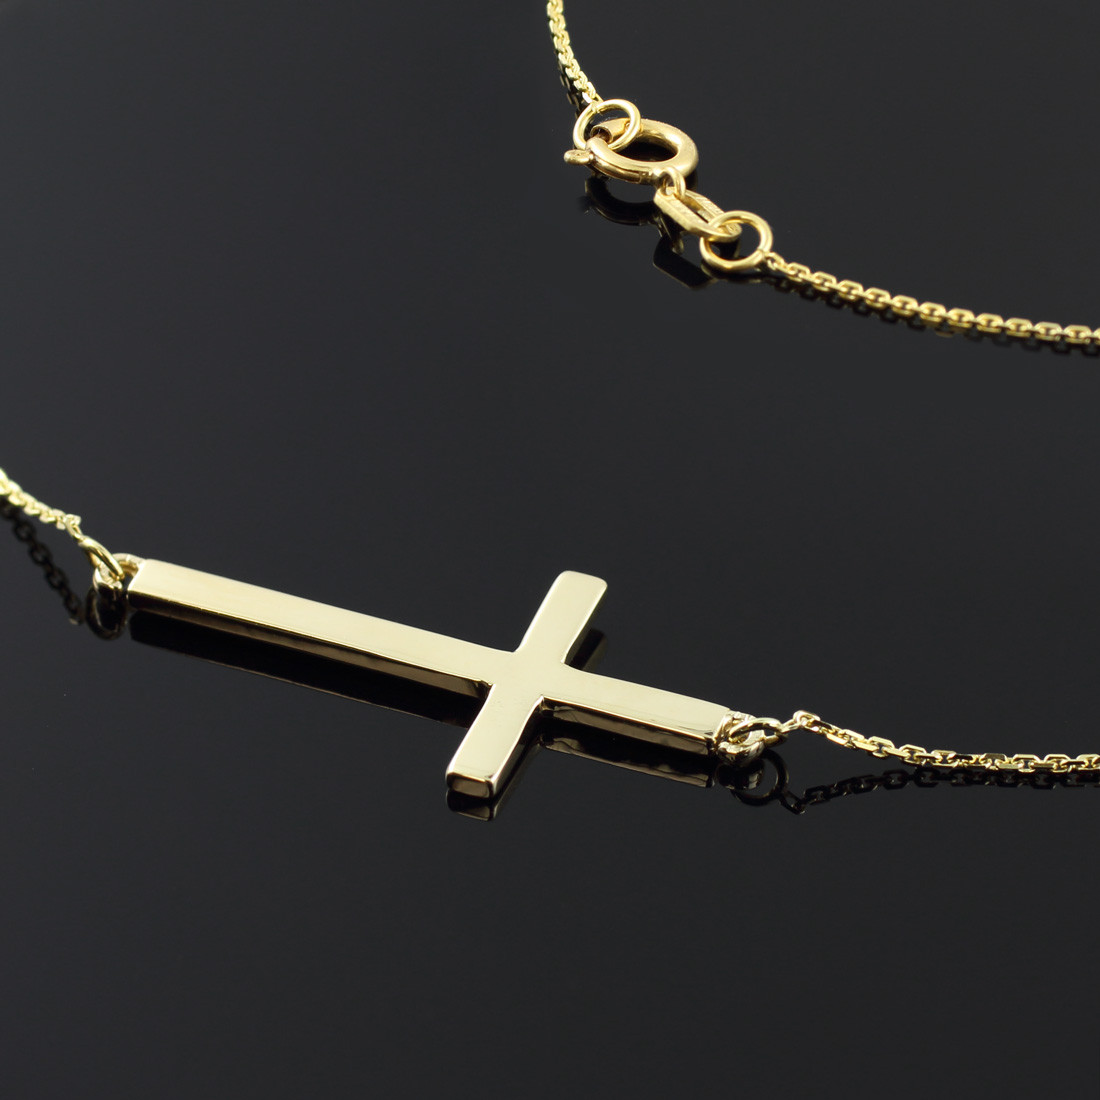 Factory Direct Jewelry 14k Solid Gold Sideways Cross Necklace with 16 Inch Chain